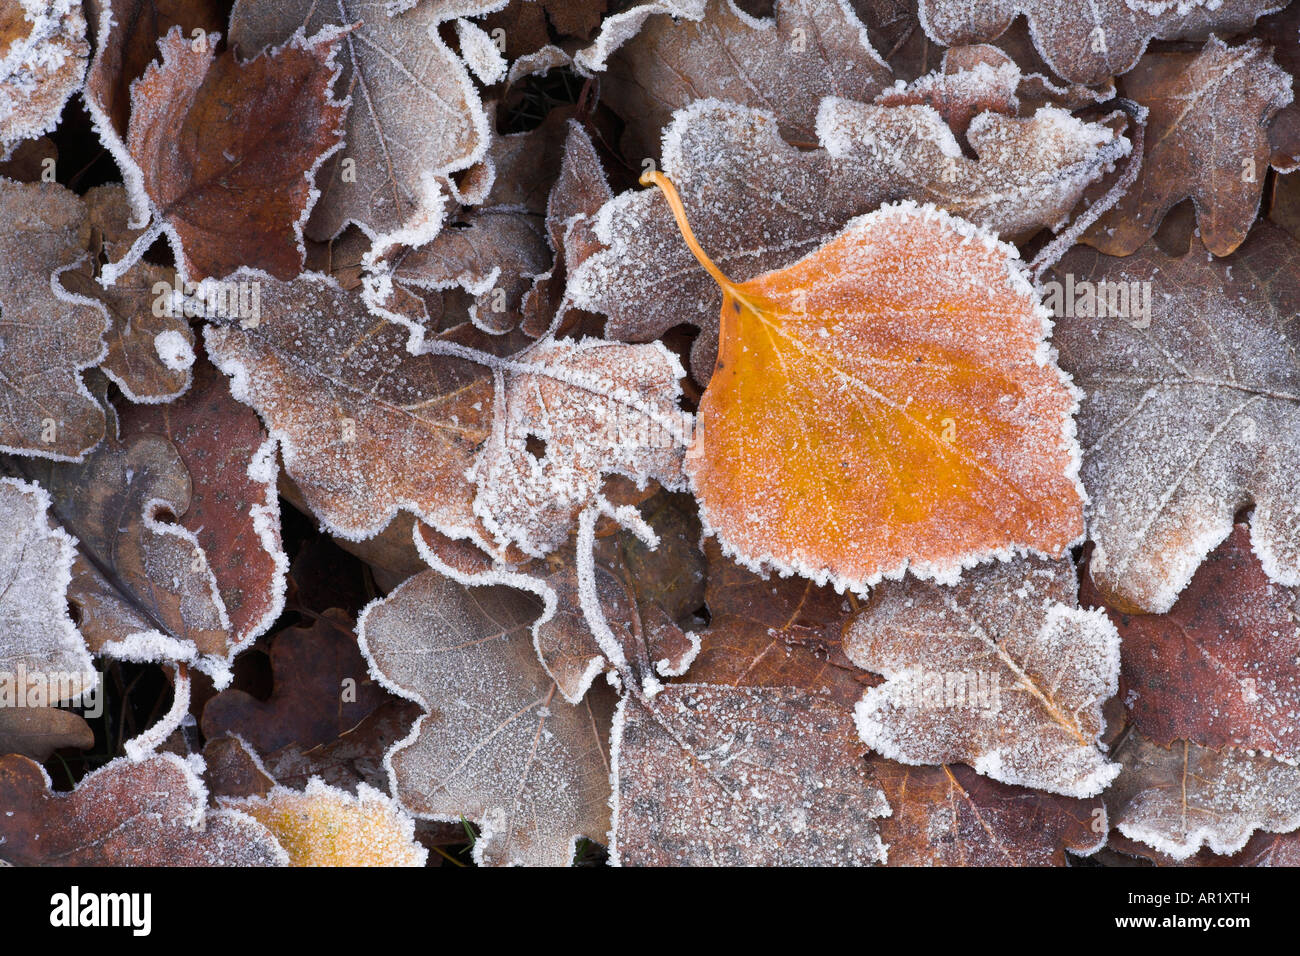 Fallen frosted leaves on the heathland, New Forest National Park - Stock Image